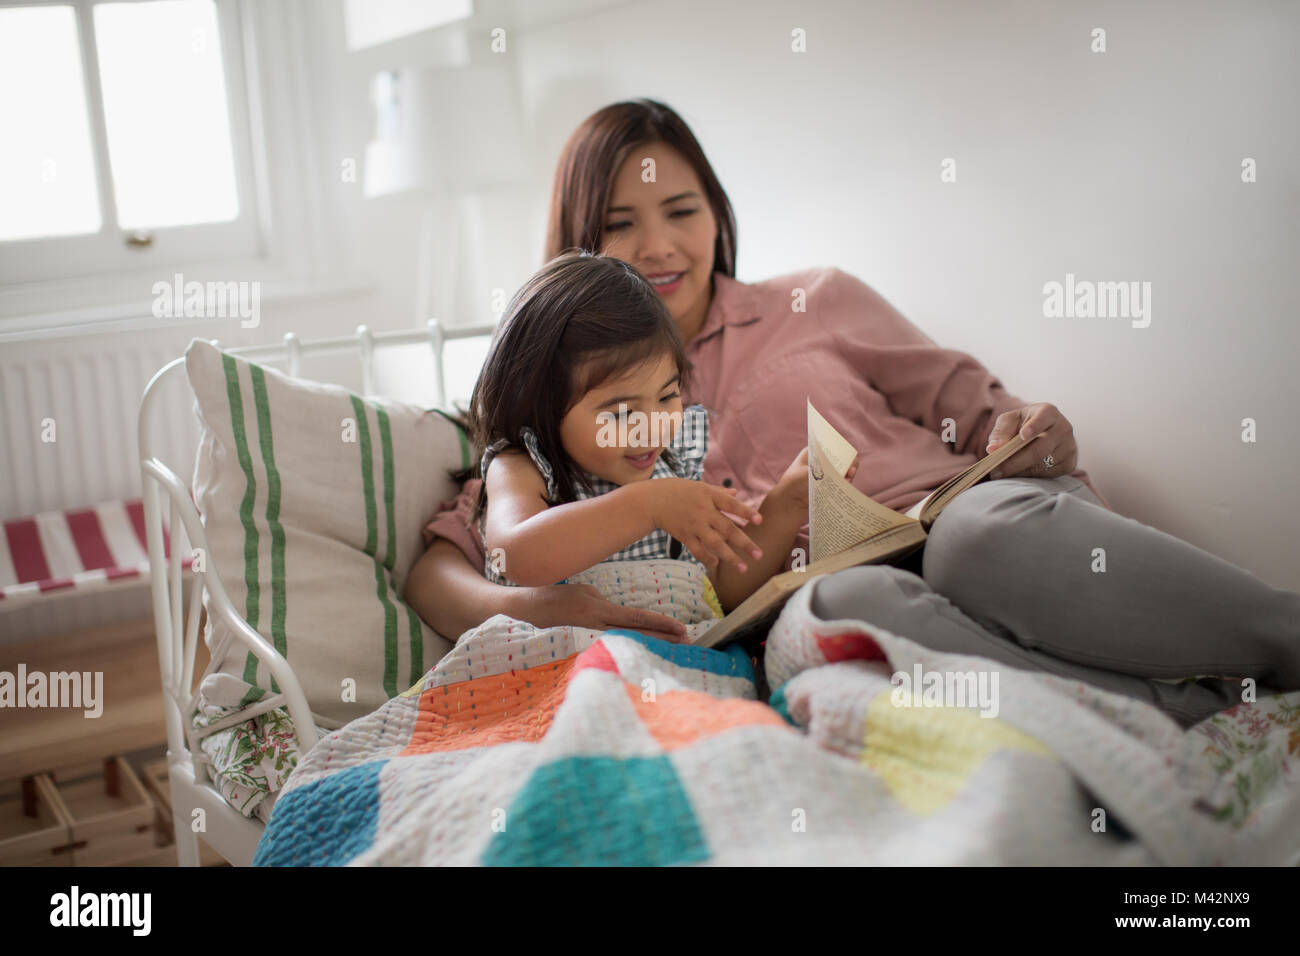 Girl turning page of a story book - Stock Image